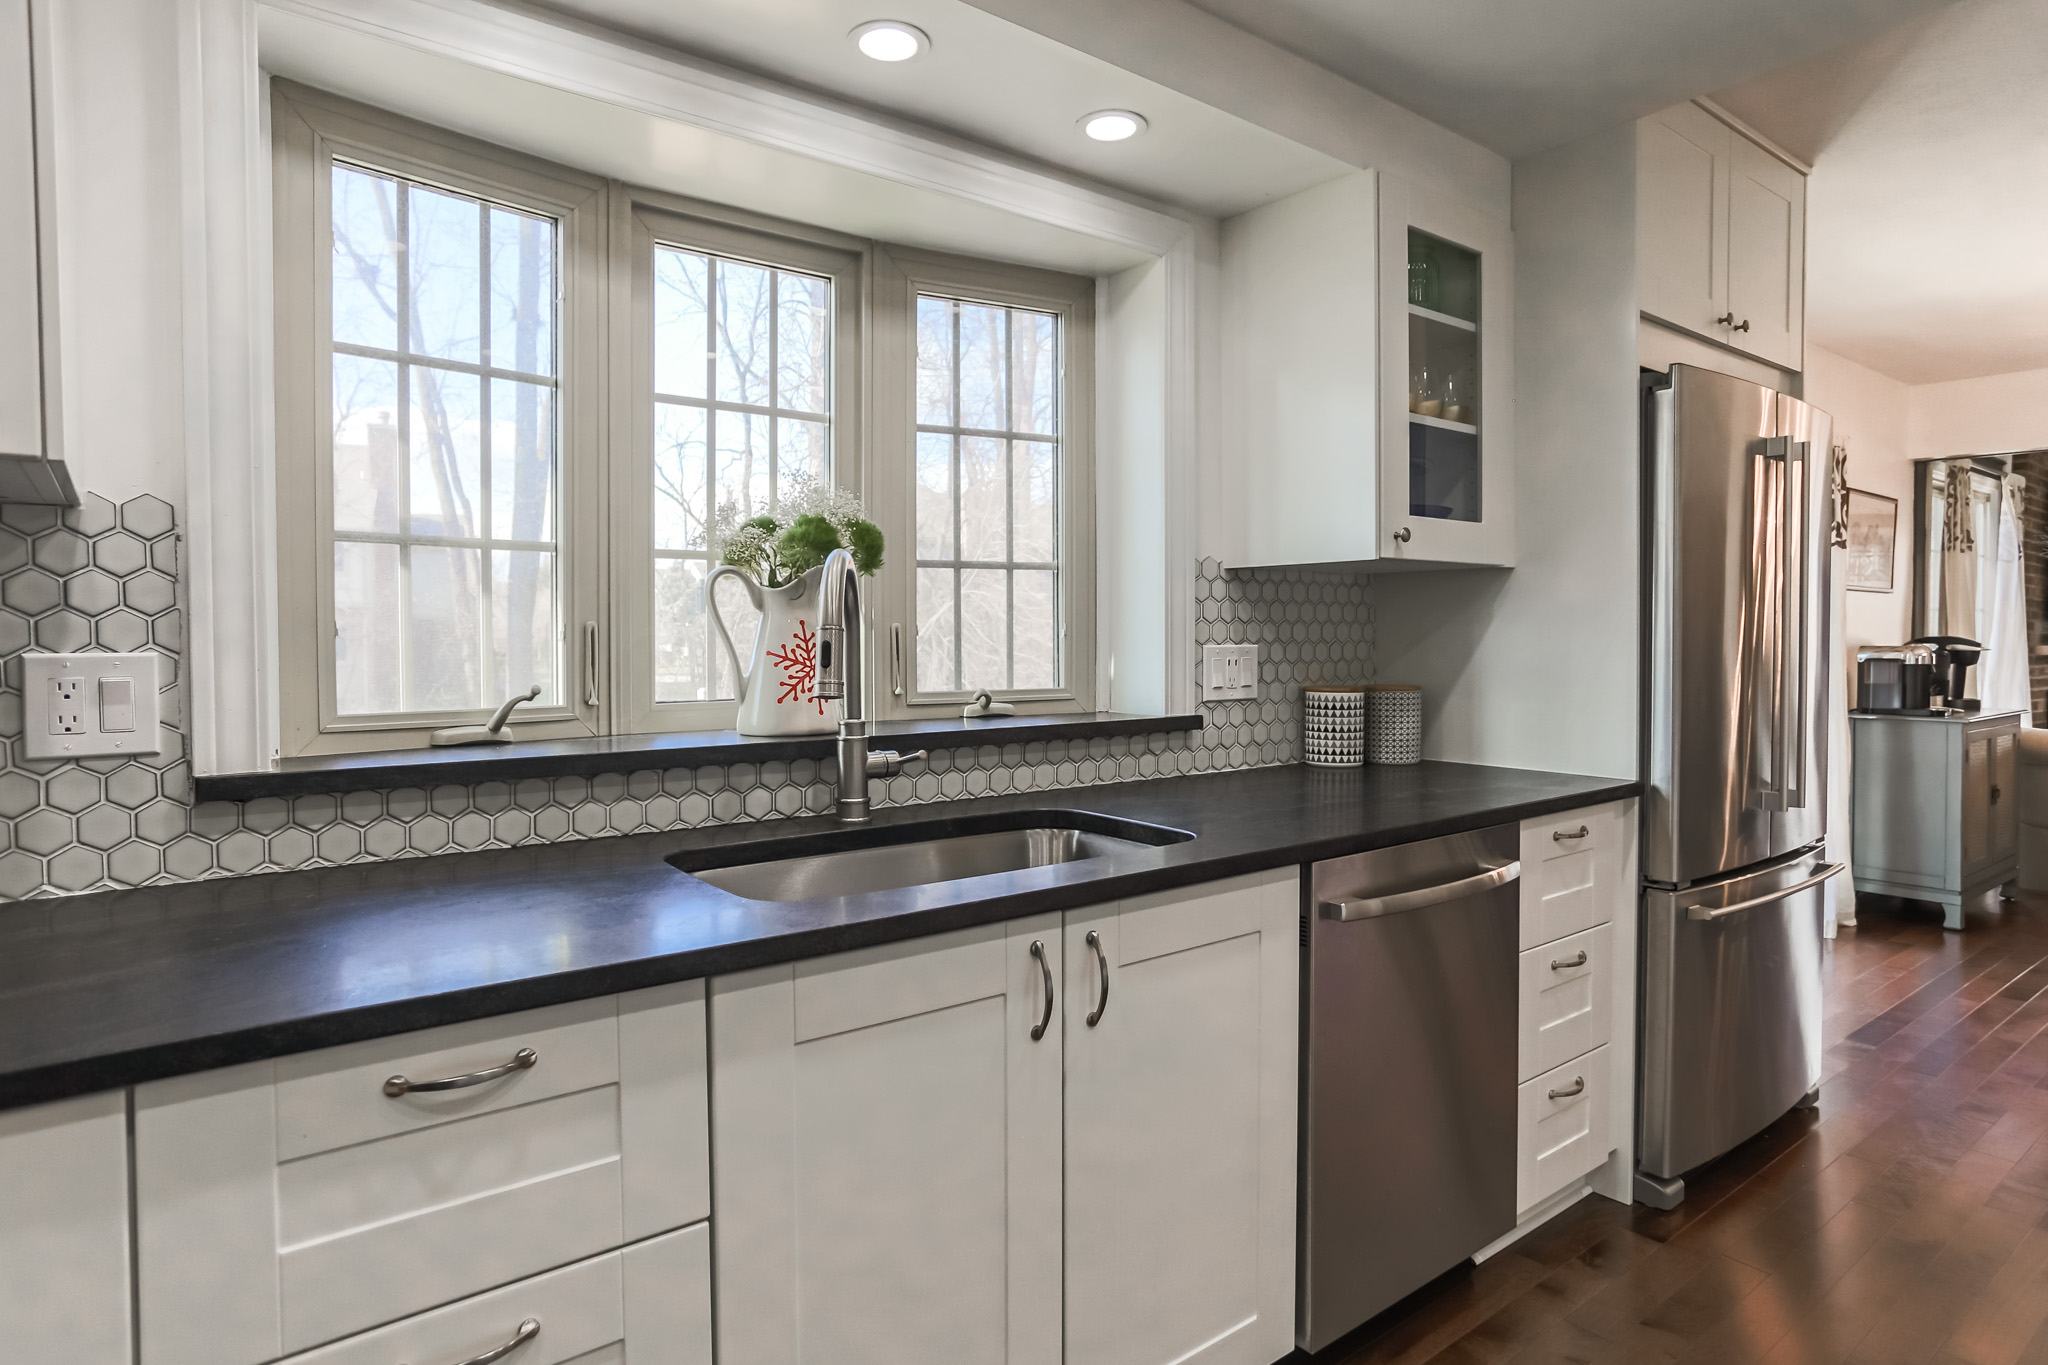 We turned a tiny cramped kitchen into an open, chic space